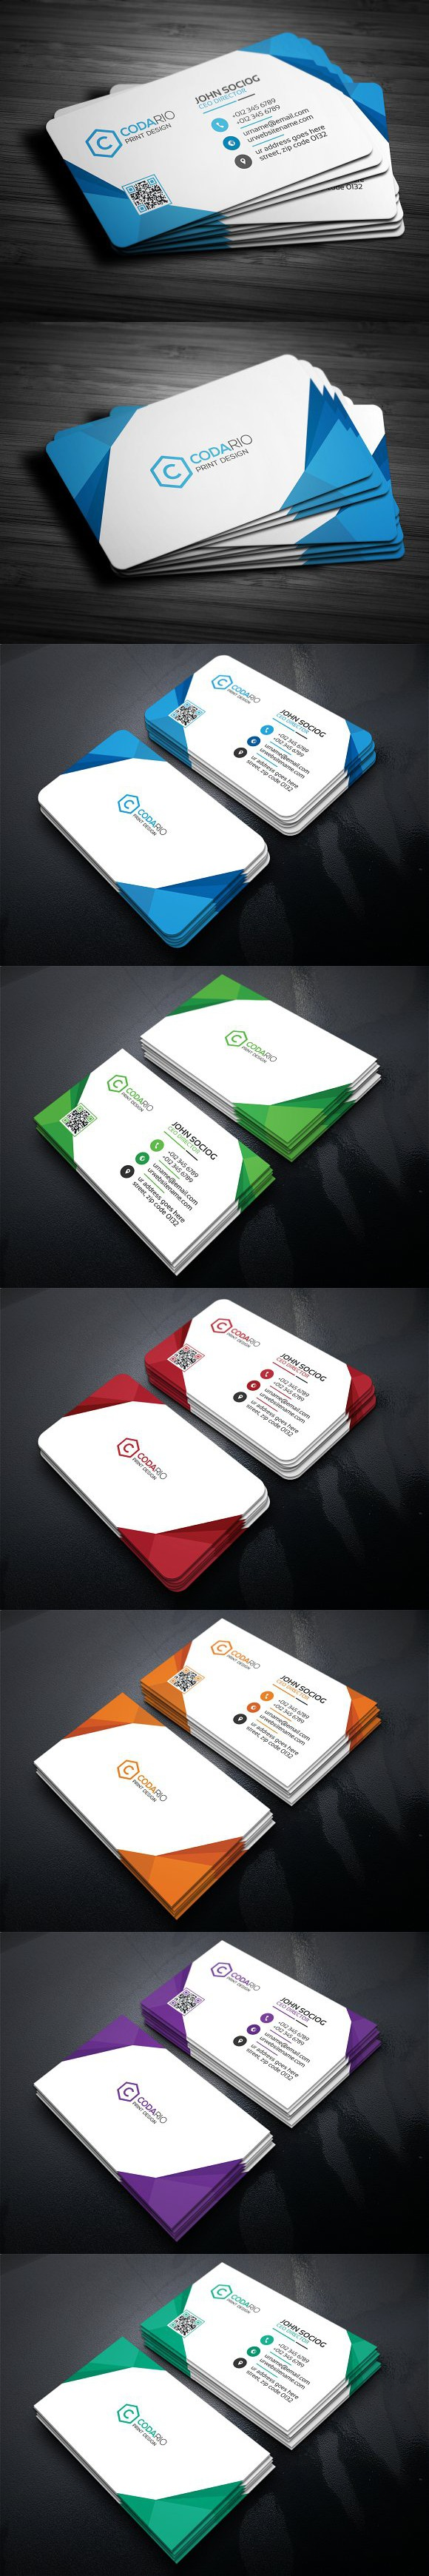 Modern corporate business cards corporate business business cards modern corporate business cards creative business card templates reheart Gallery